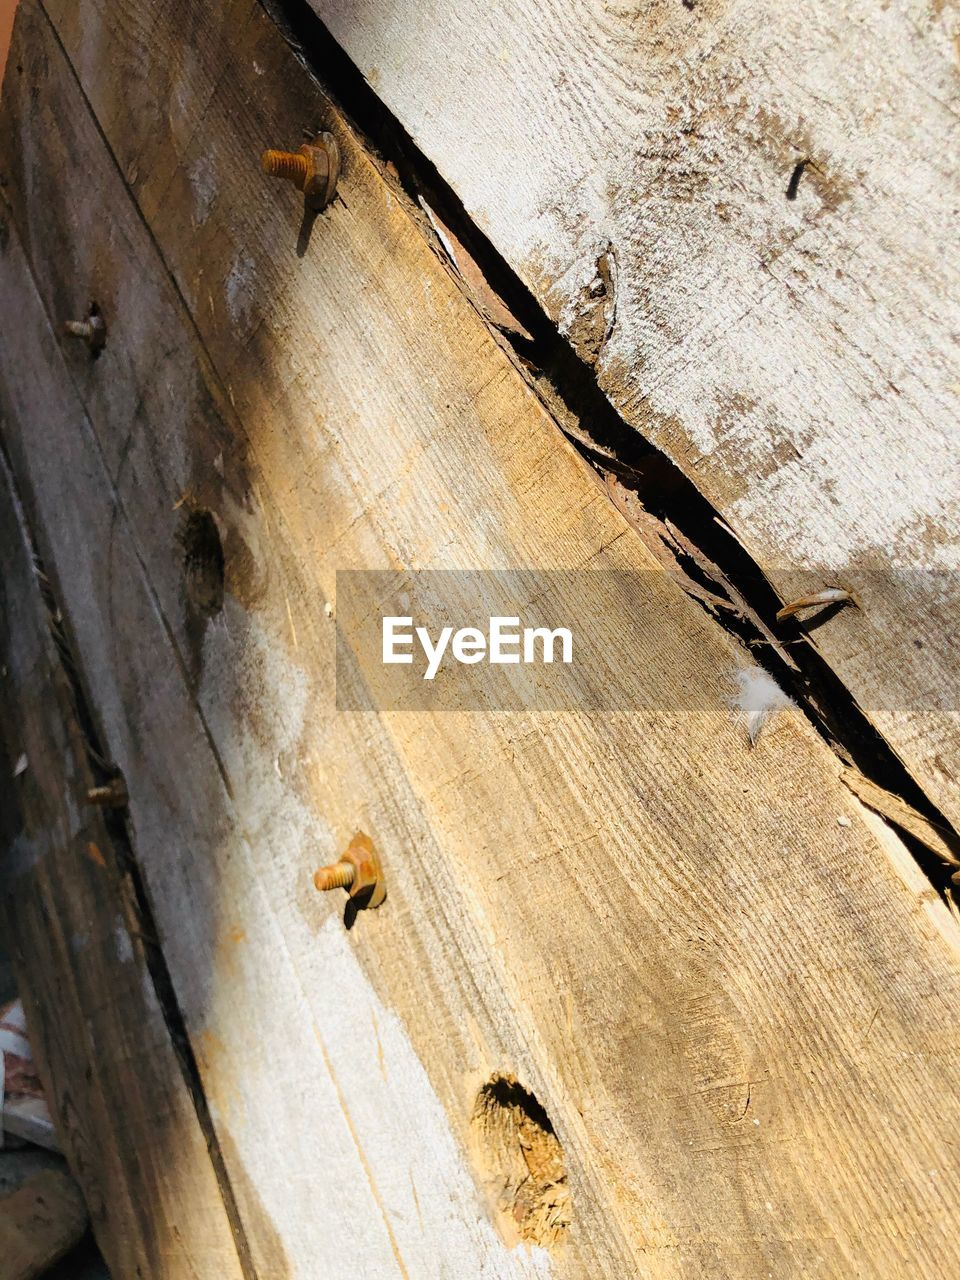 wood - material, low angle view, no people, animal wildlife, animals in the wild, close-up, textured, day, invertebrate, insect, animal, sunlight, nature, animal themes, group of animals, outdoors, tree, wood, pattern